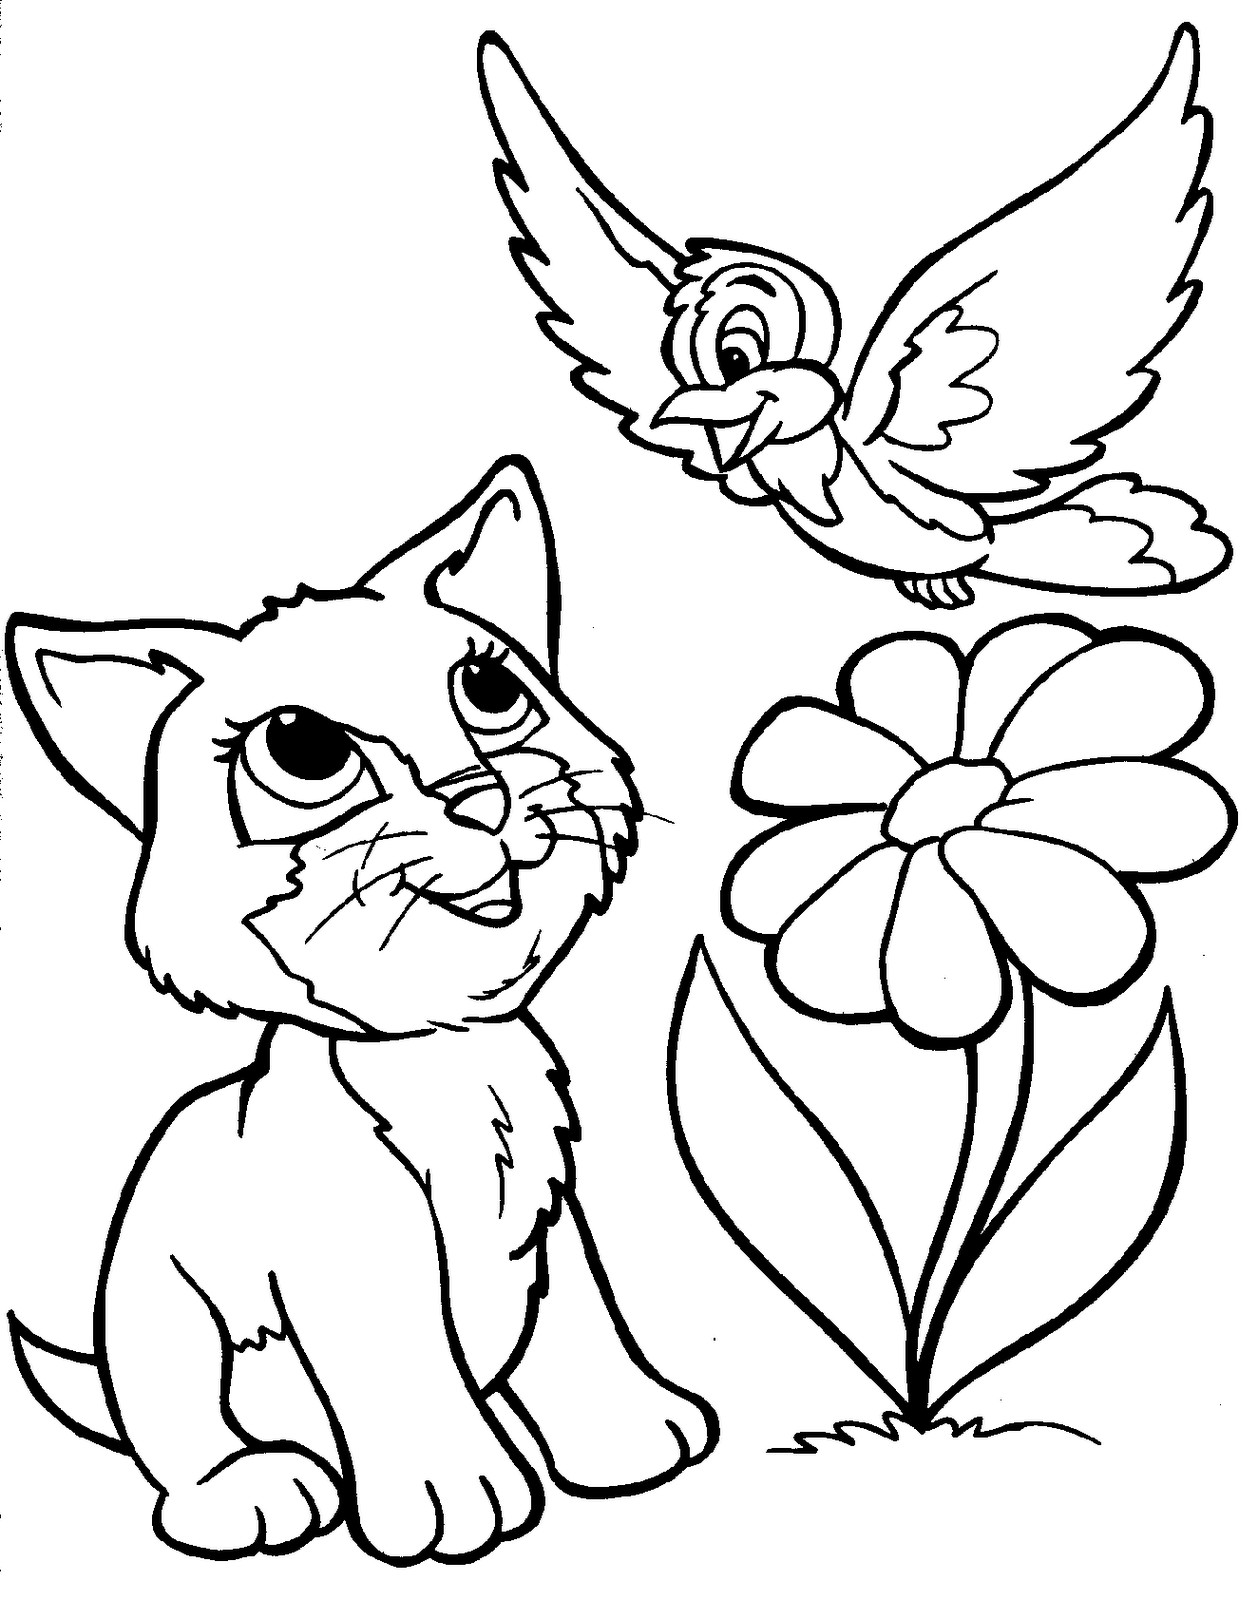 Printable Coloring Pages Of Animals  Cute Baby Animal Coloring Pages 18 Image – Colorings